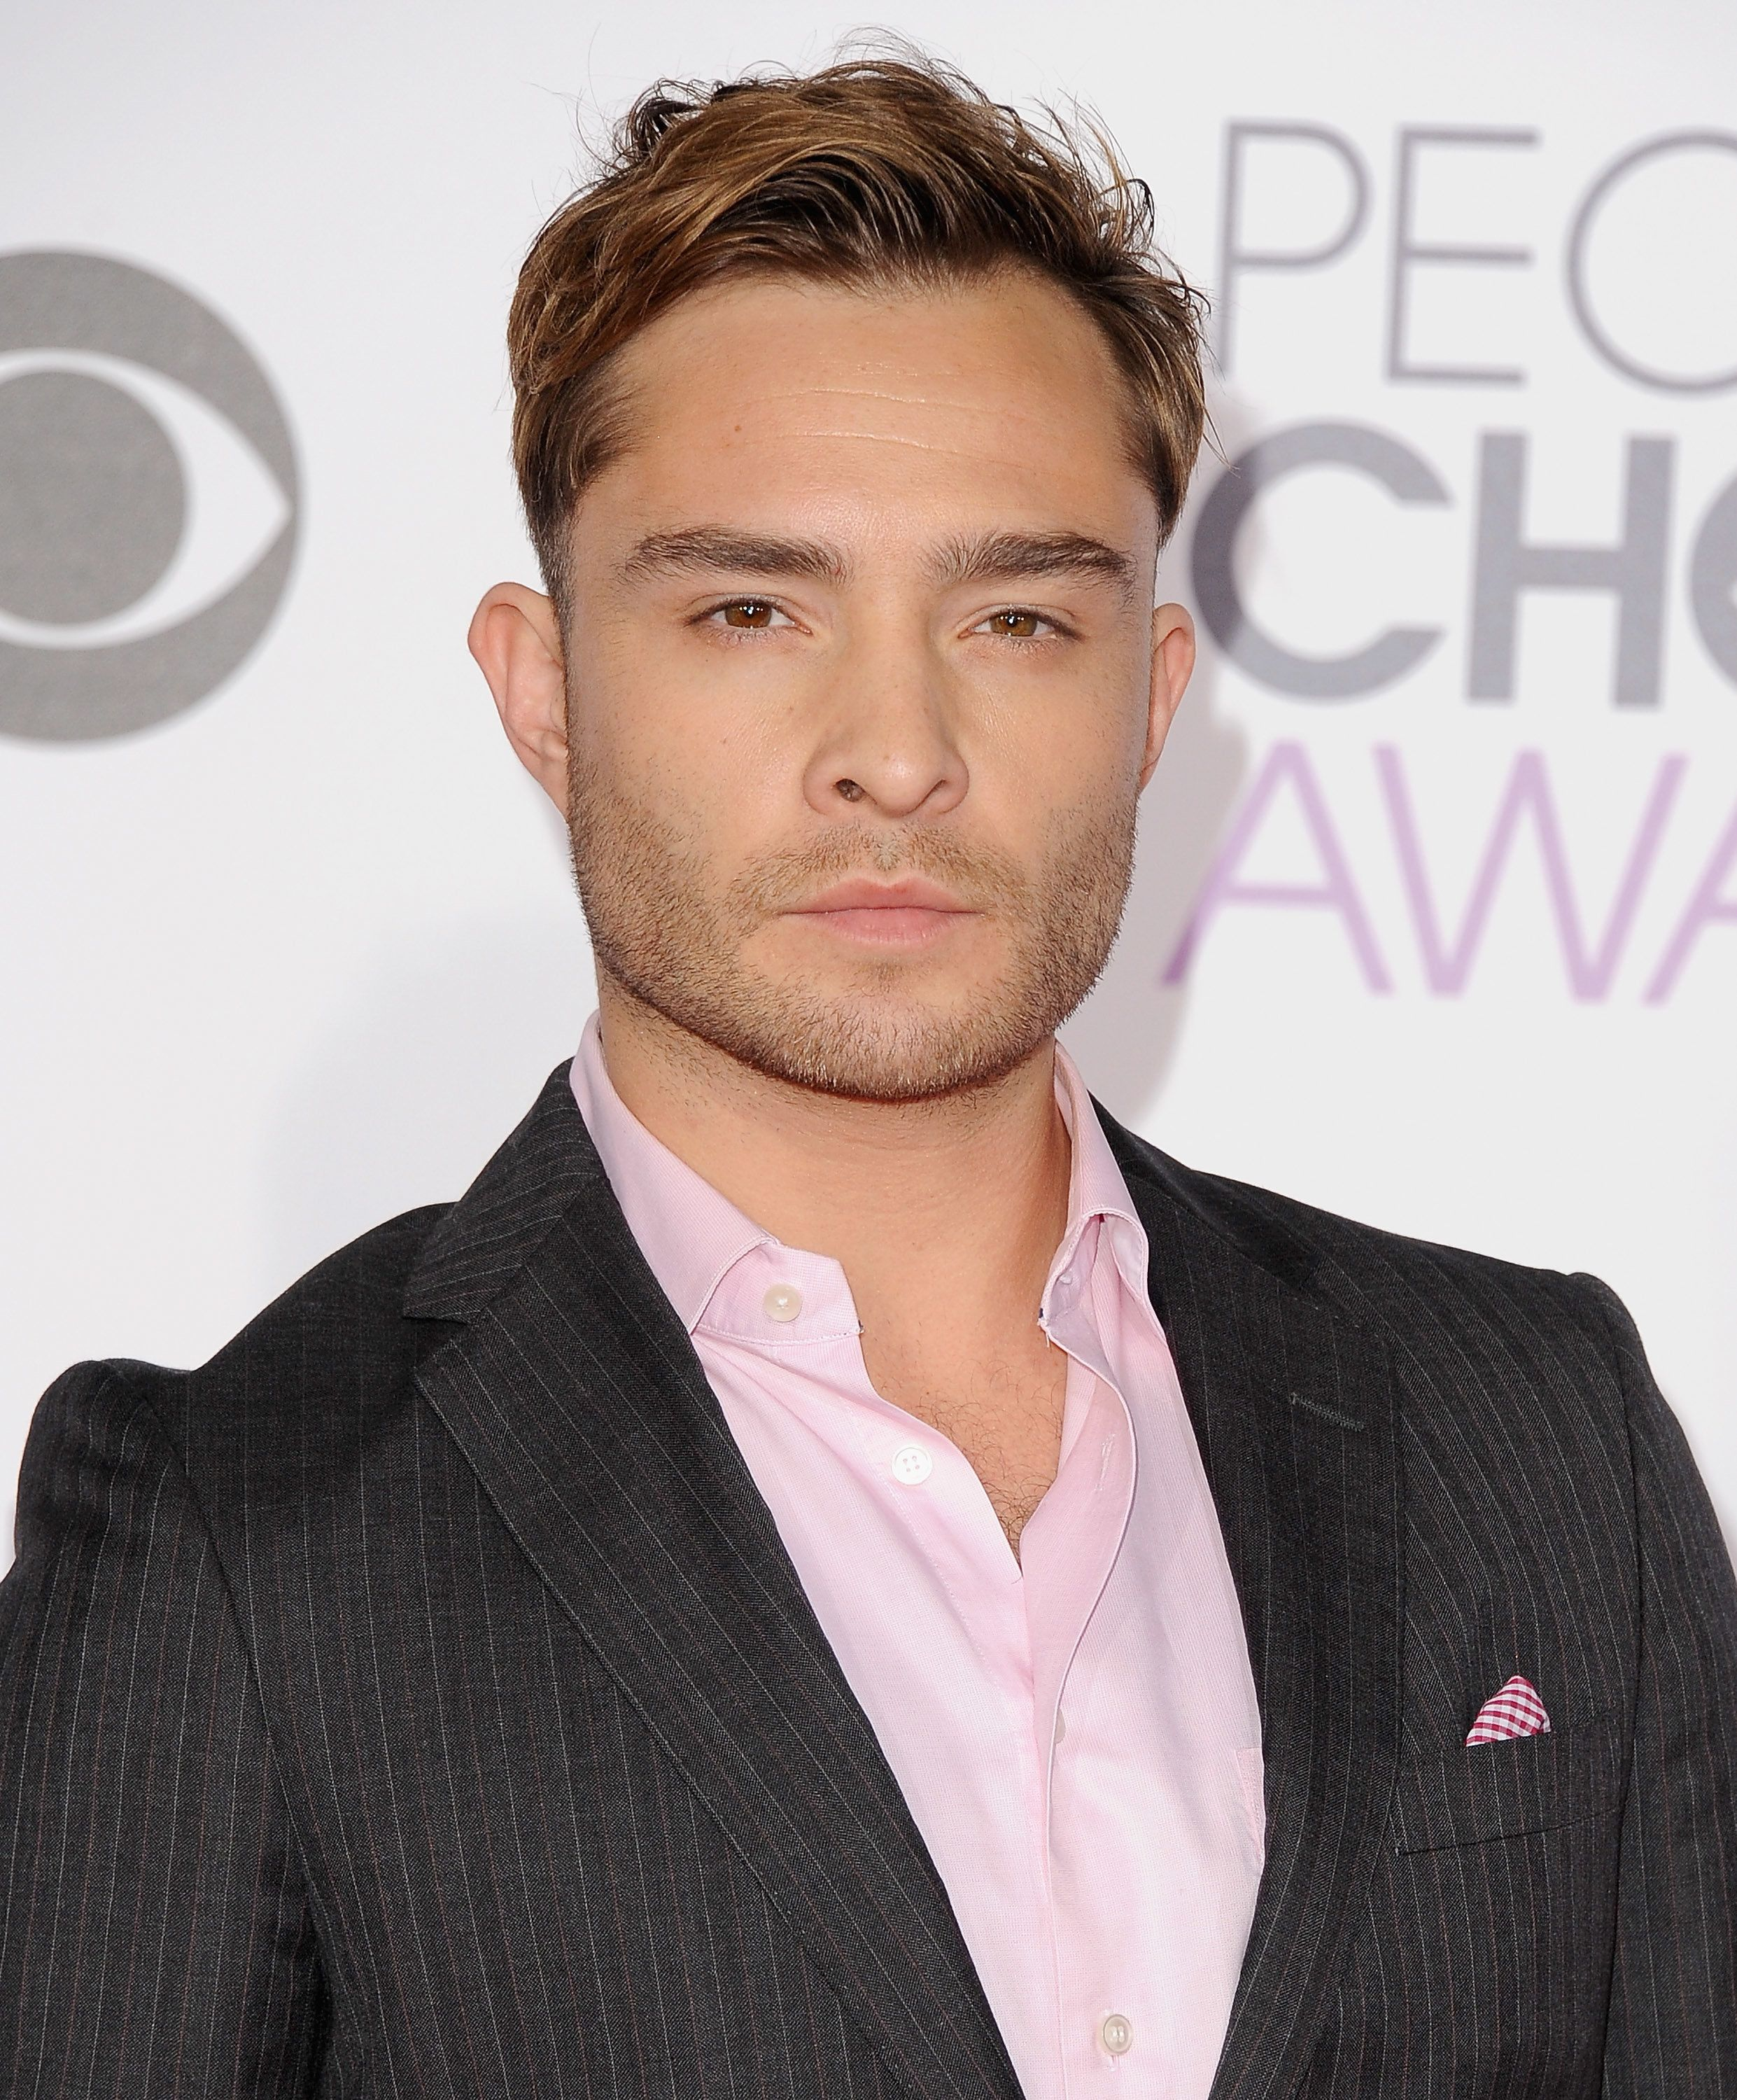 LAPD Confirms They're Investigating Rape Claim Made Against Gossip Girl's Ed